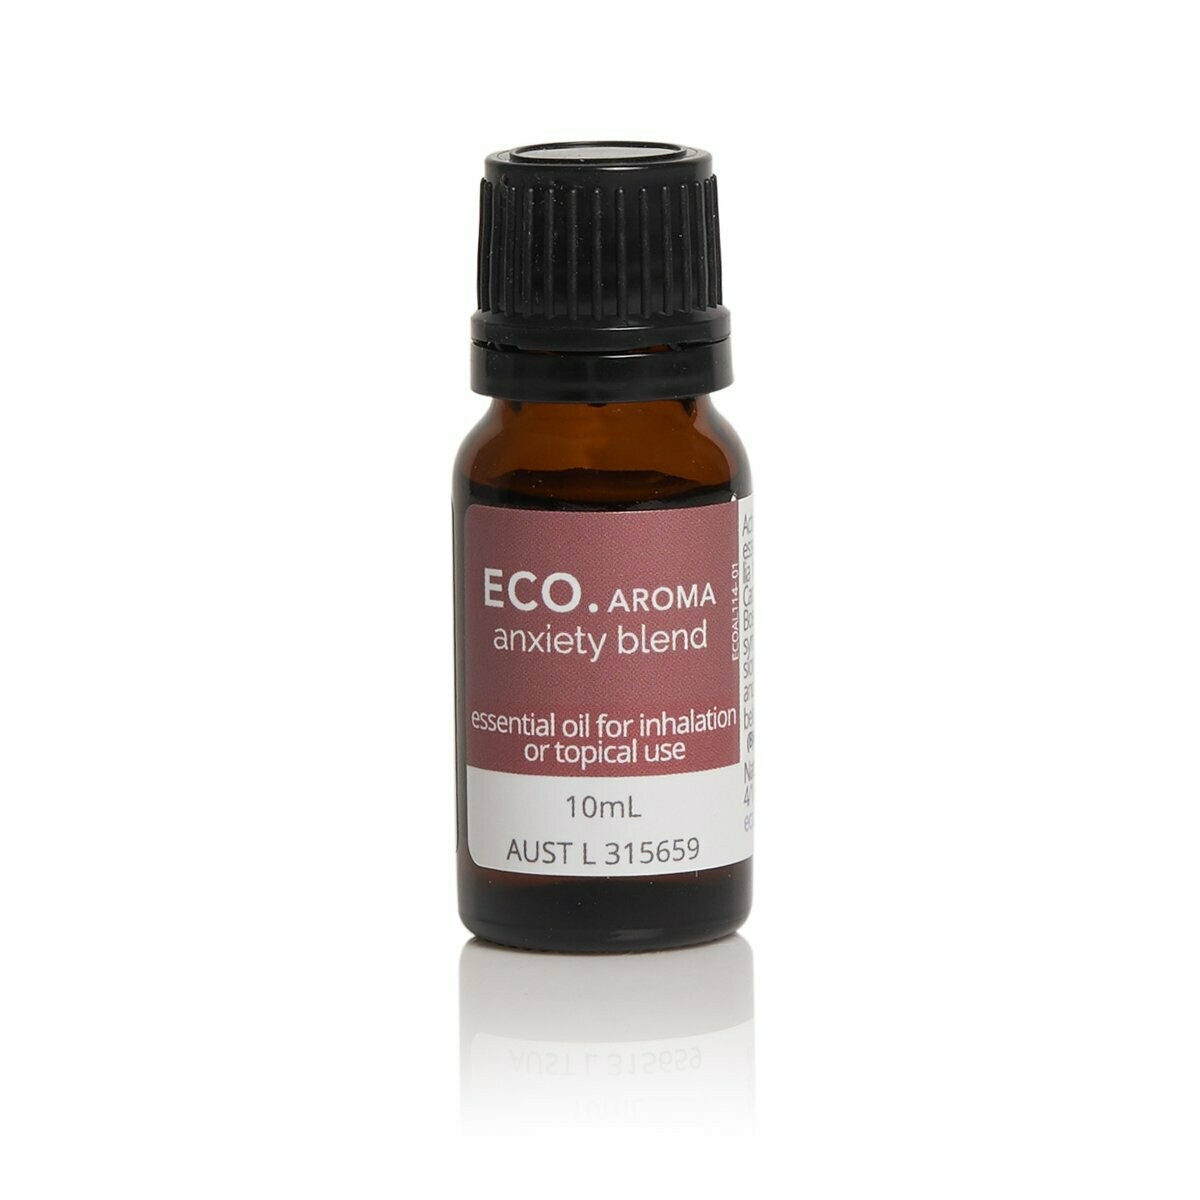 ECO. Aroma Anxiety Blend 10mL